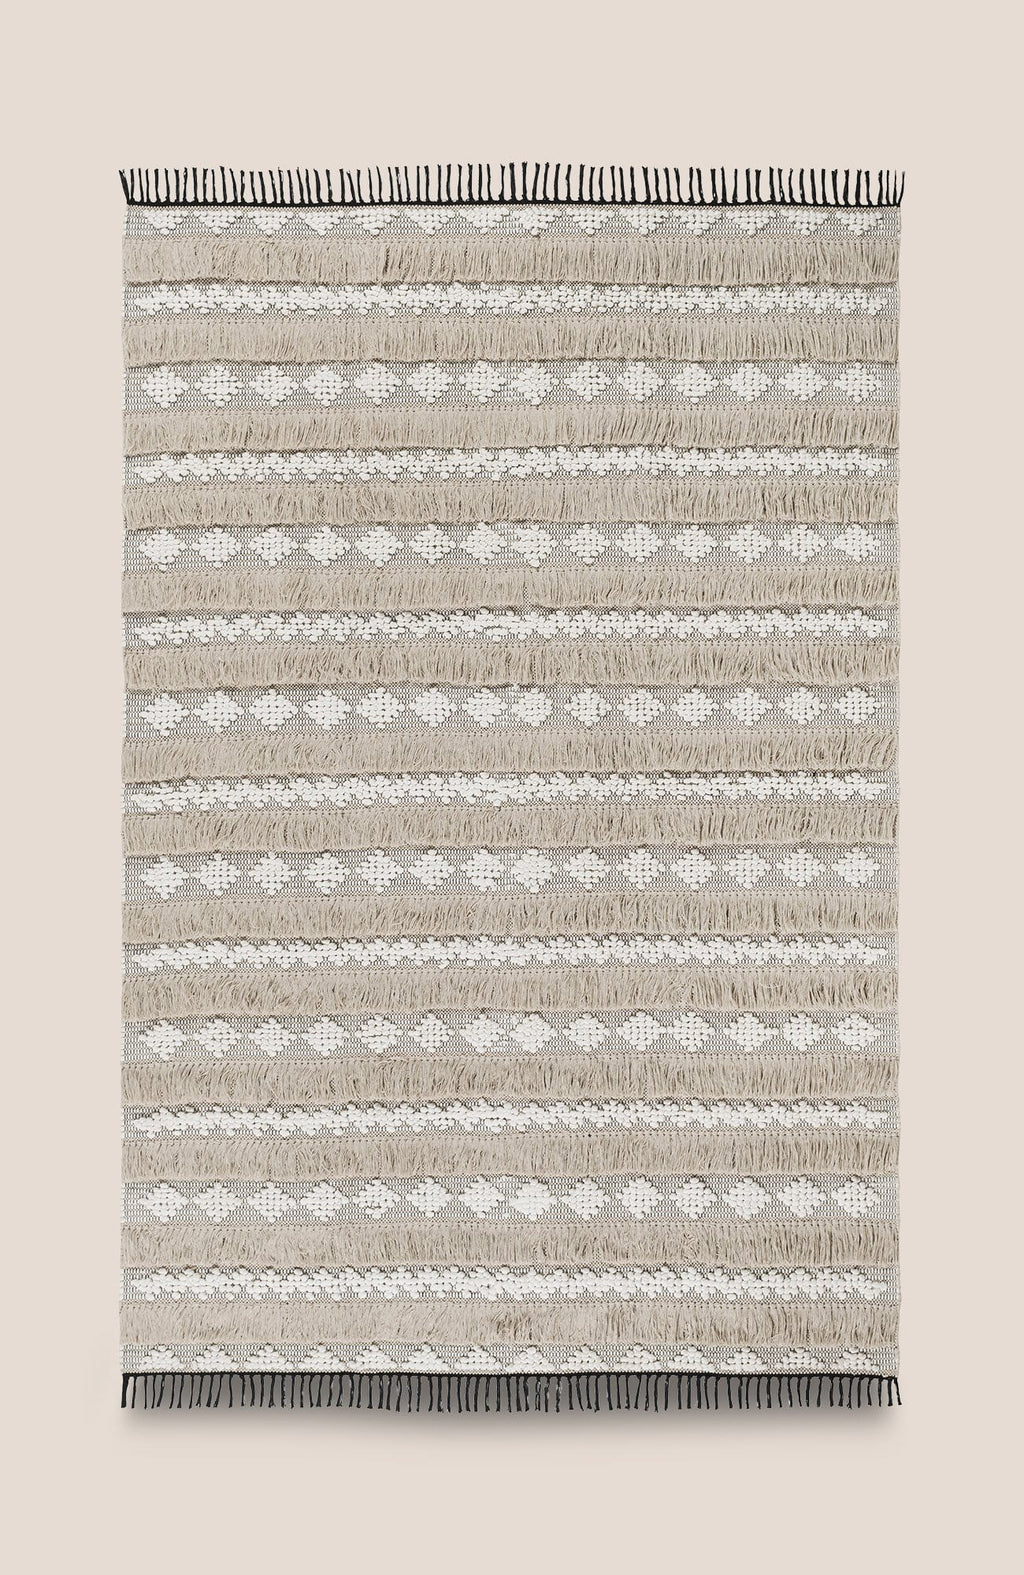 Boho Tassel Rug - Casa - Home Decor | Shop Baskets, Ceramics, Pillows, Rugs & Wall Hangs online